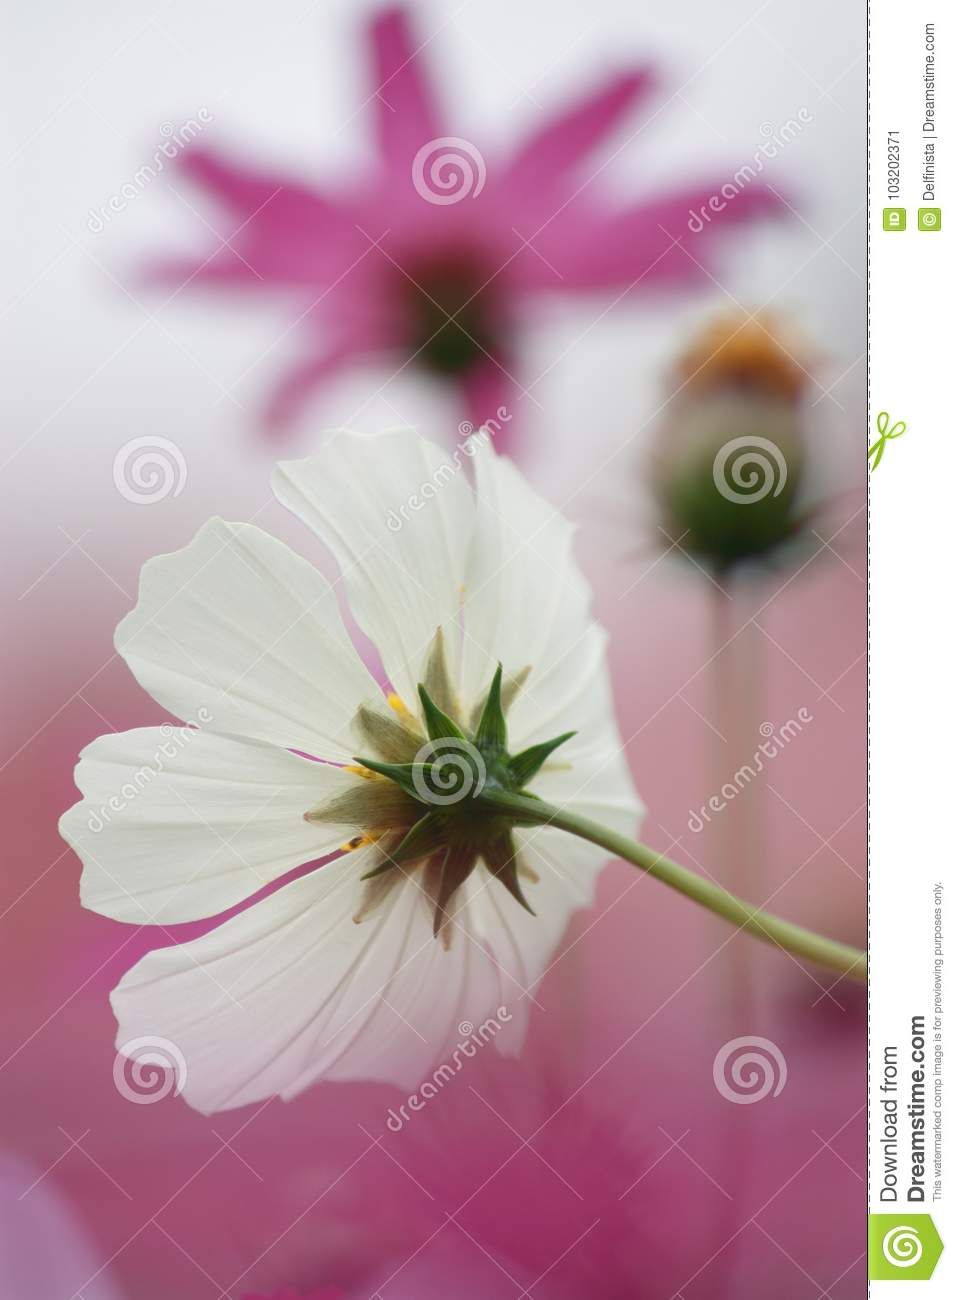 Photo about floral background white pink cosmos flower in bloom